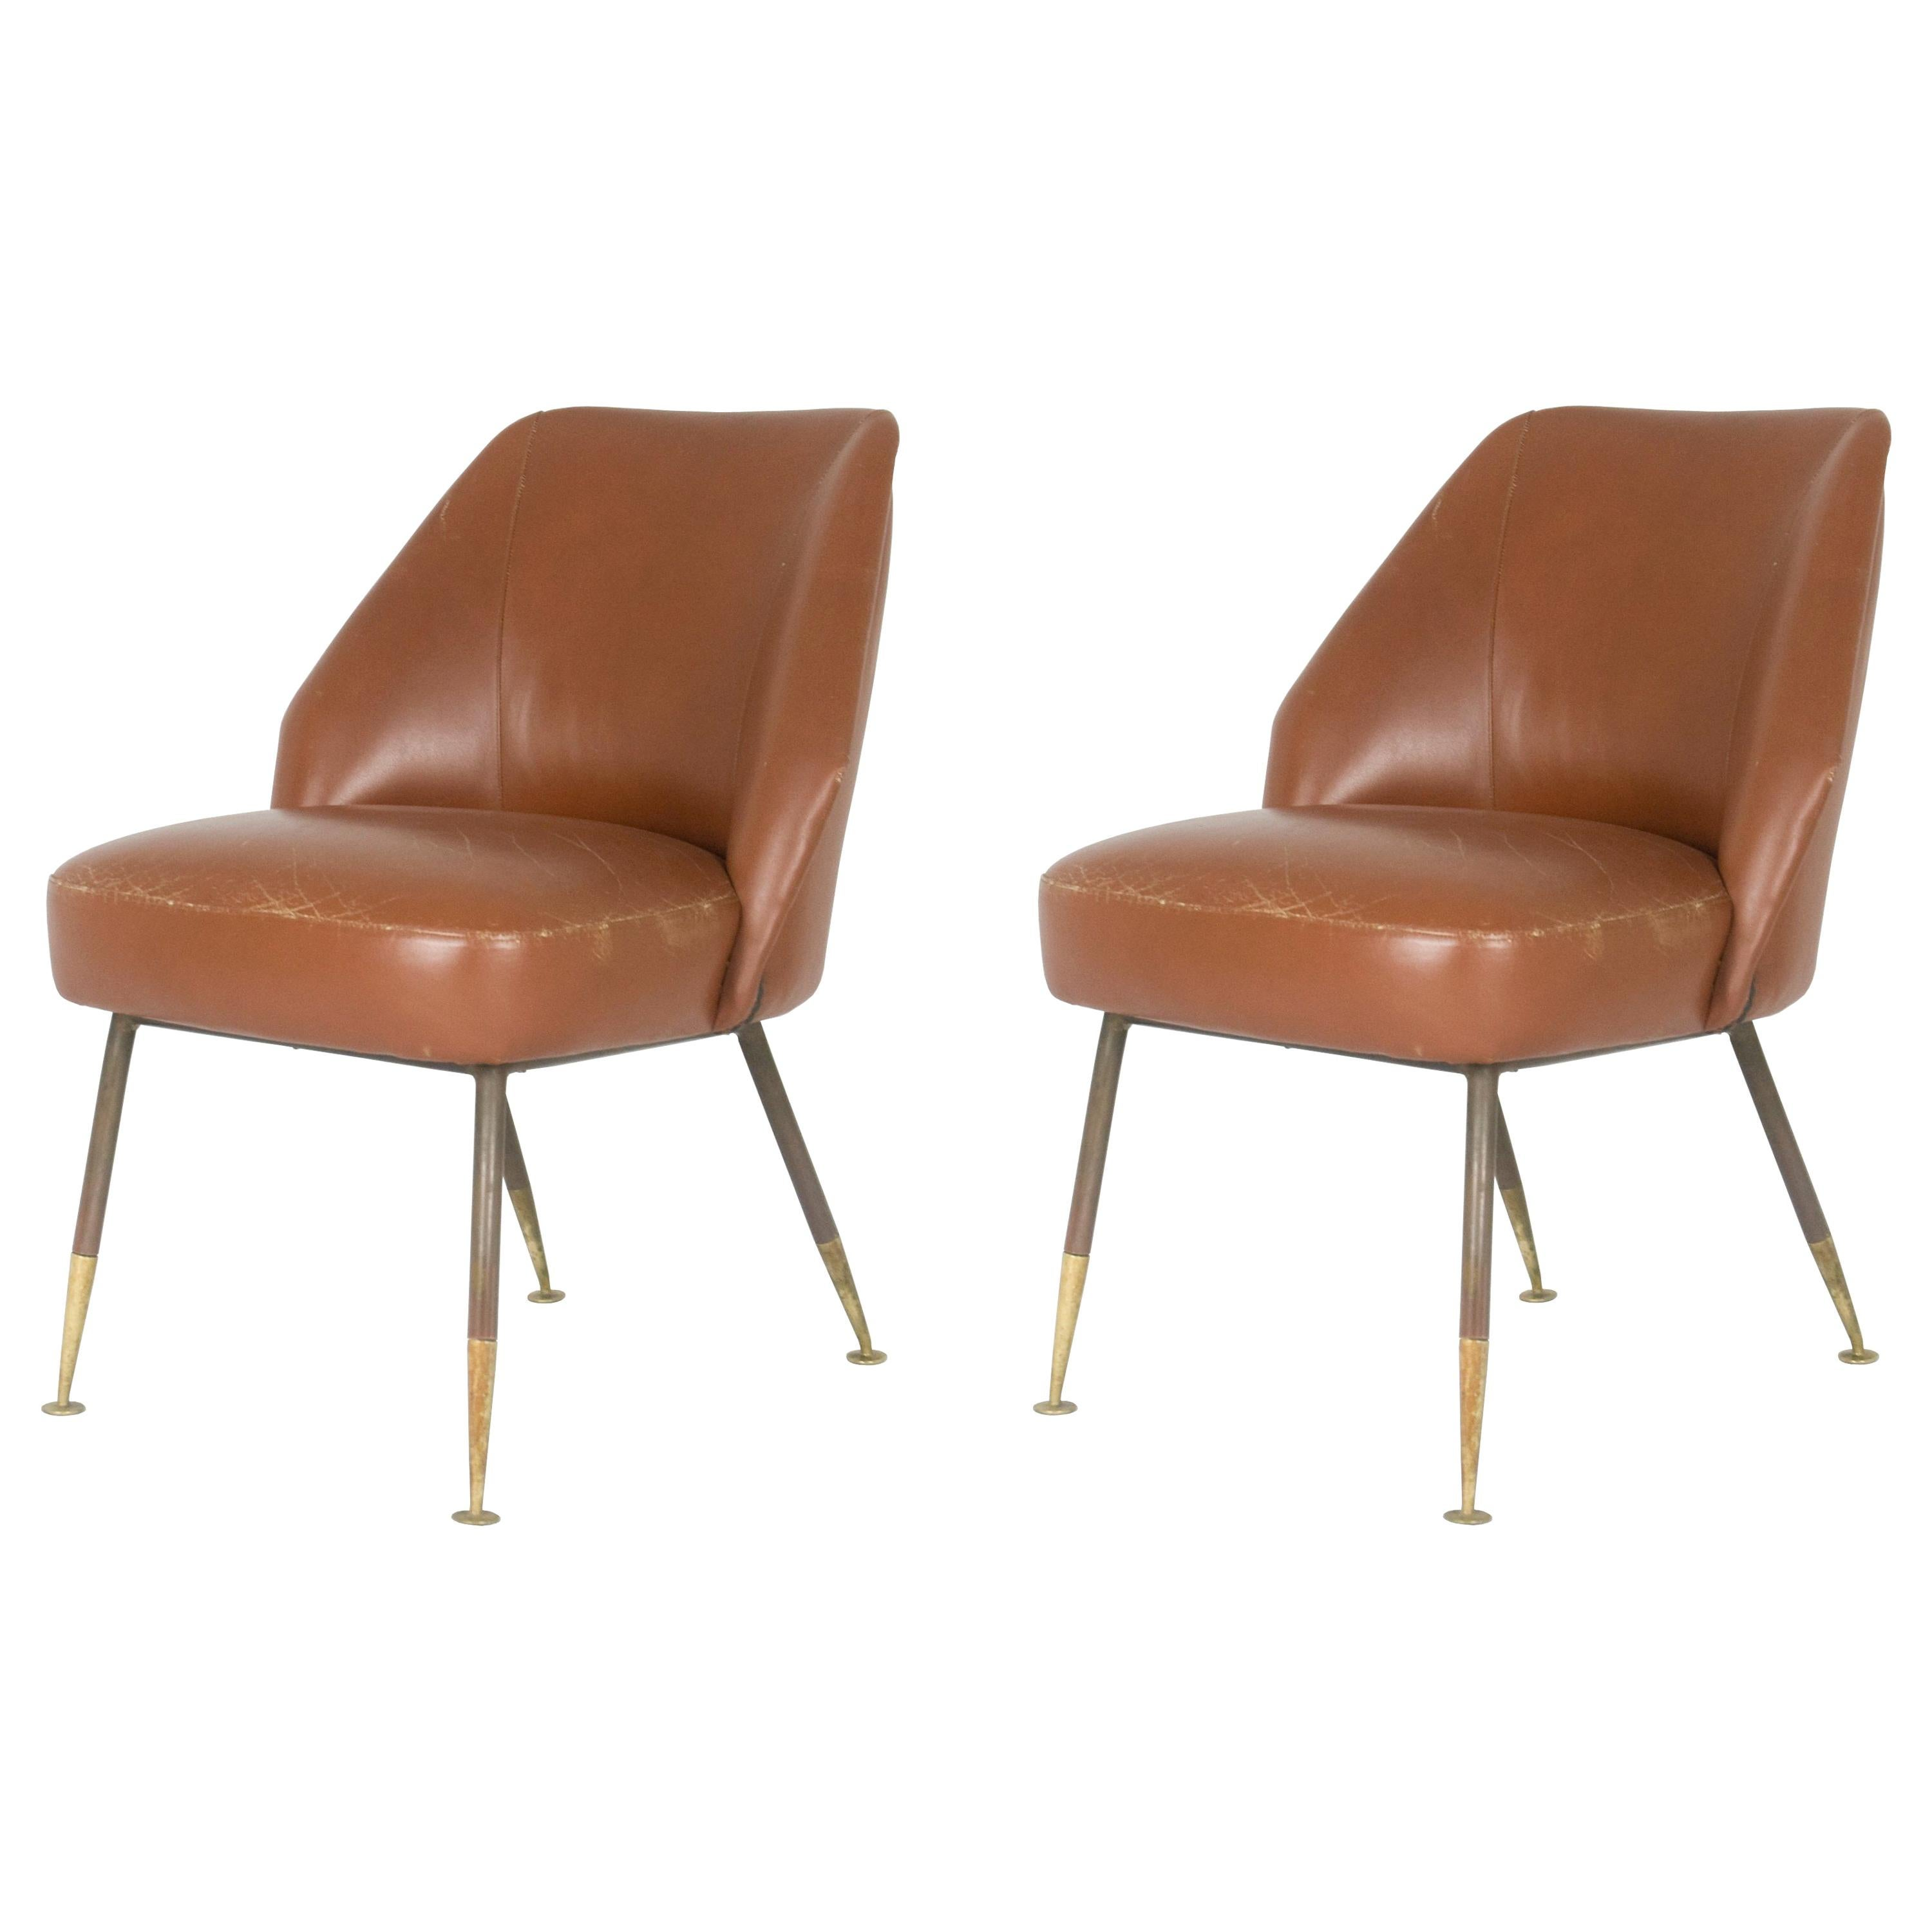 """Leather """"Campanula"""" Chairs by Carlo Pagani for Arflex, 1952, Set of Two"""